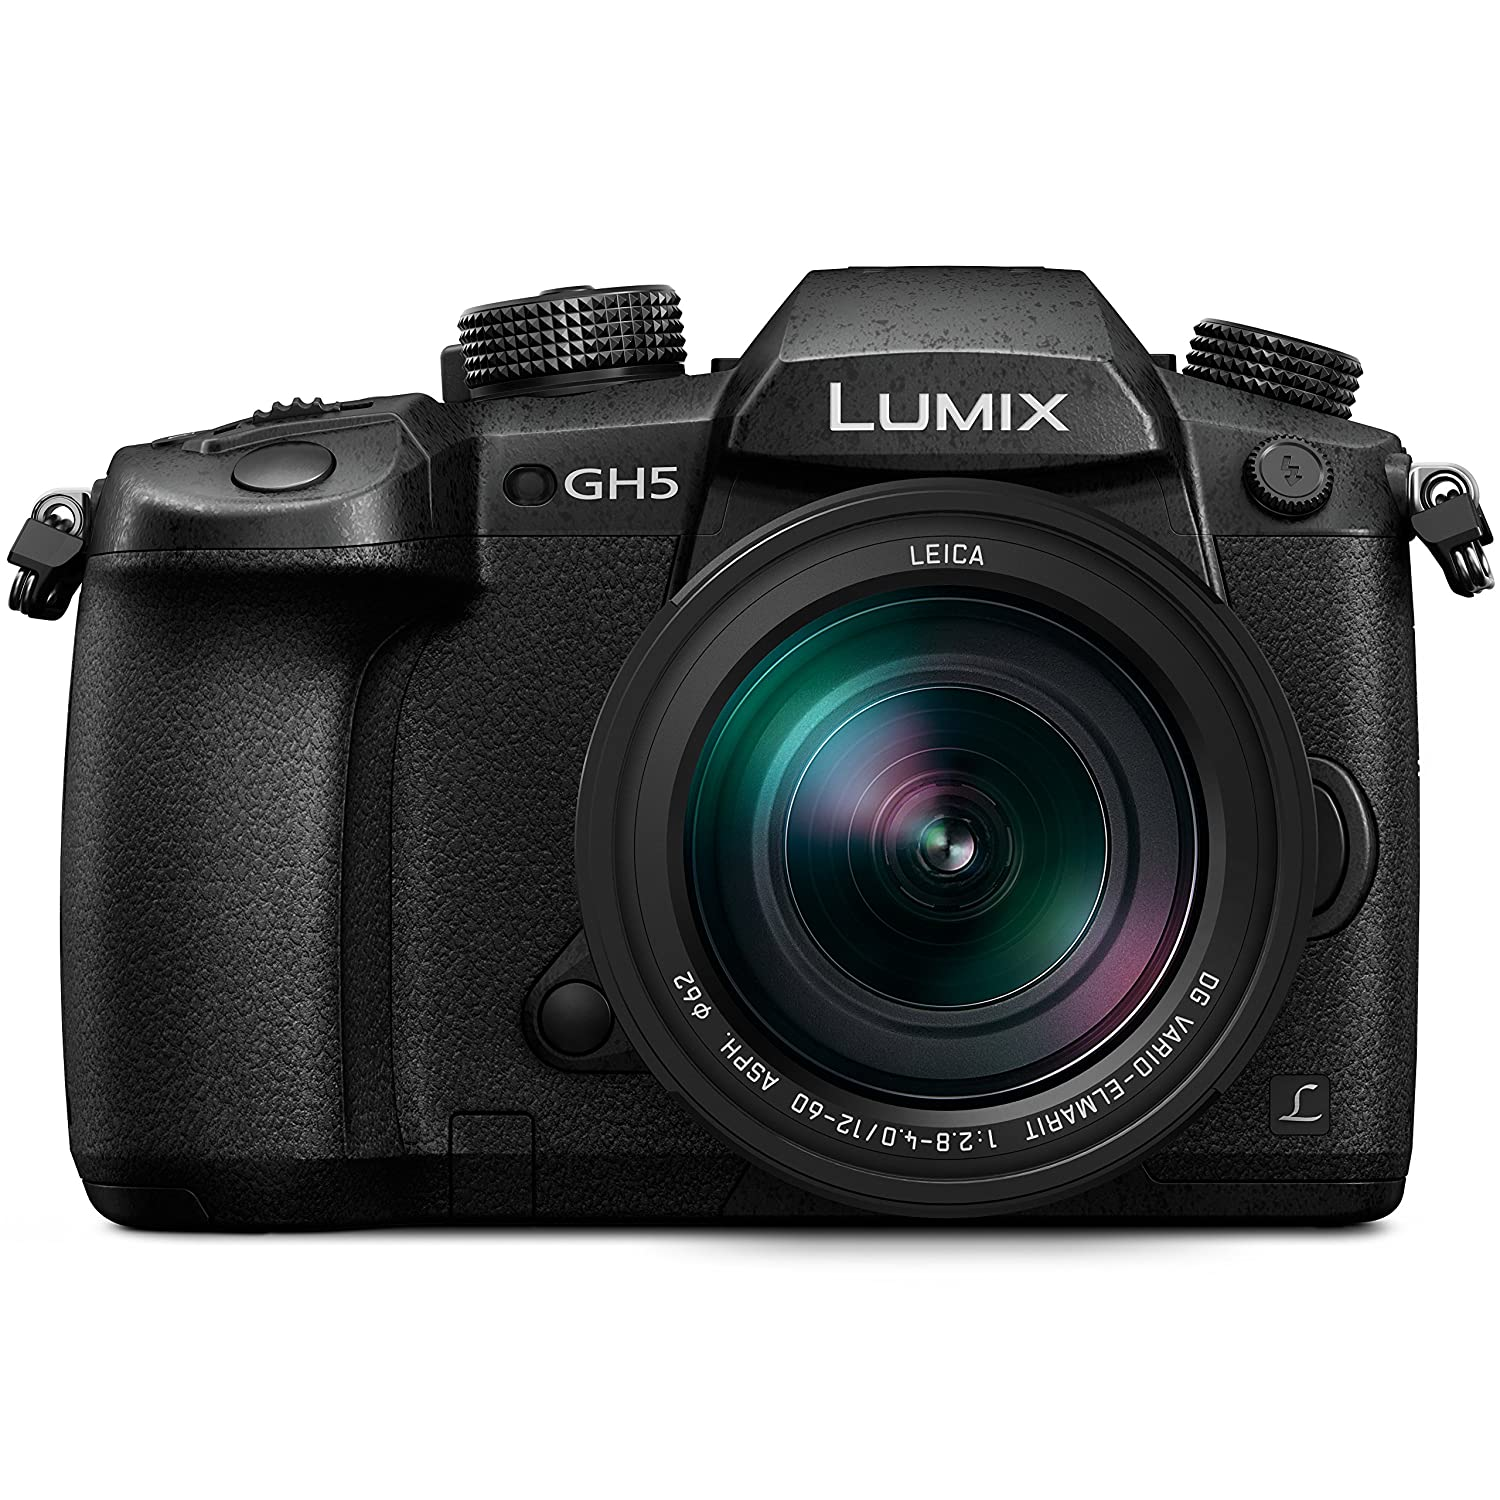 Panasonic LUMIX GH5 4K Mirrorless Camera with Lecia Vario-Elmarit 12-60mm F2.8-4.0 Lens (DC-GH5LK)